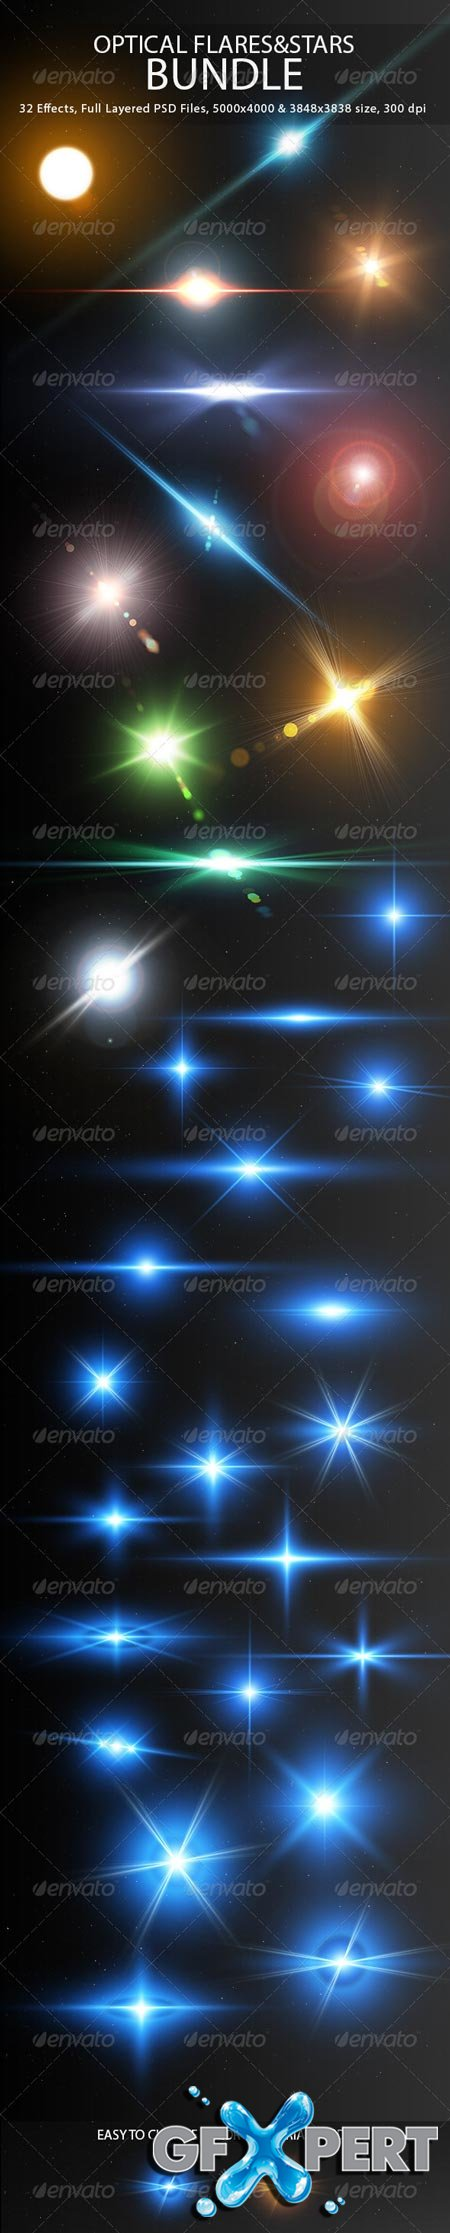 GraphicRiver Optical Flares&Stars Bundle 7602672